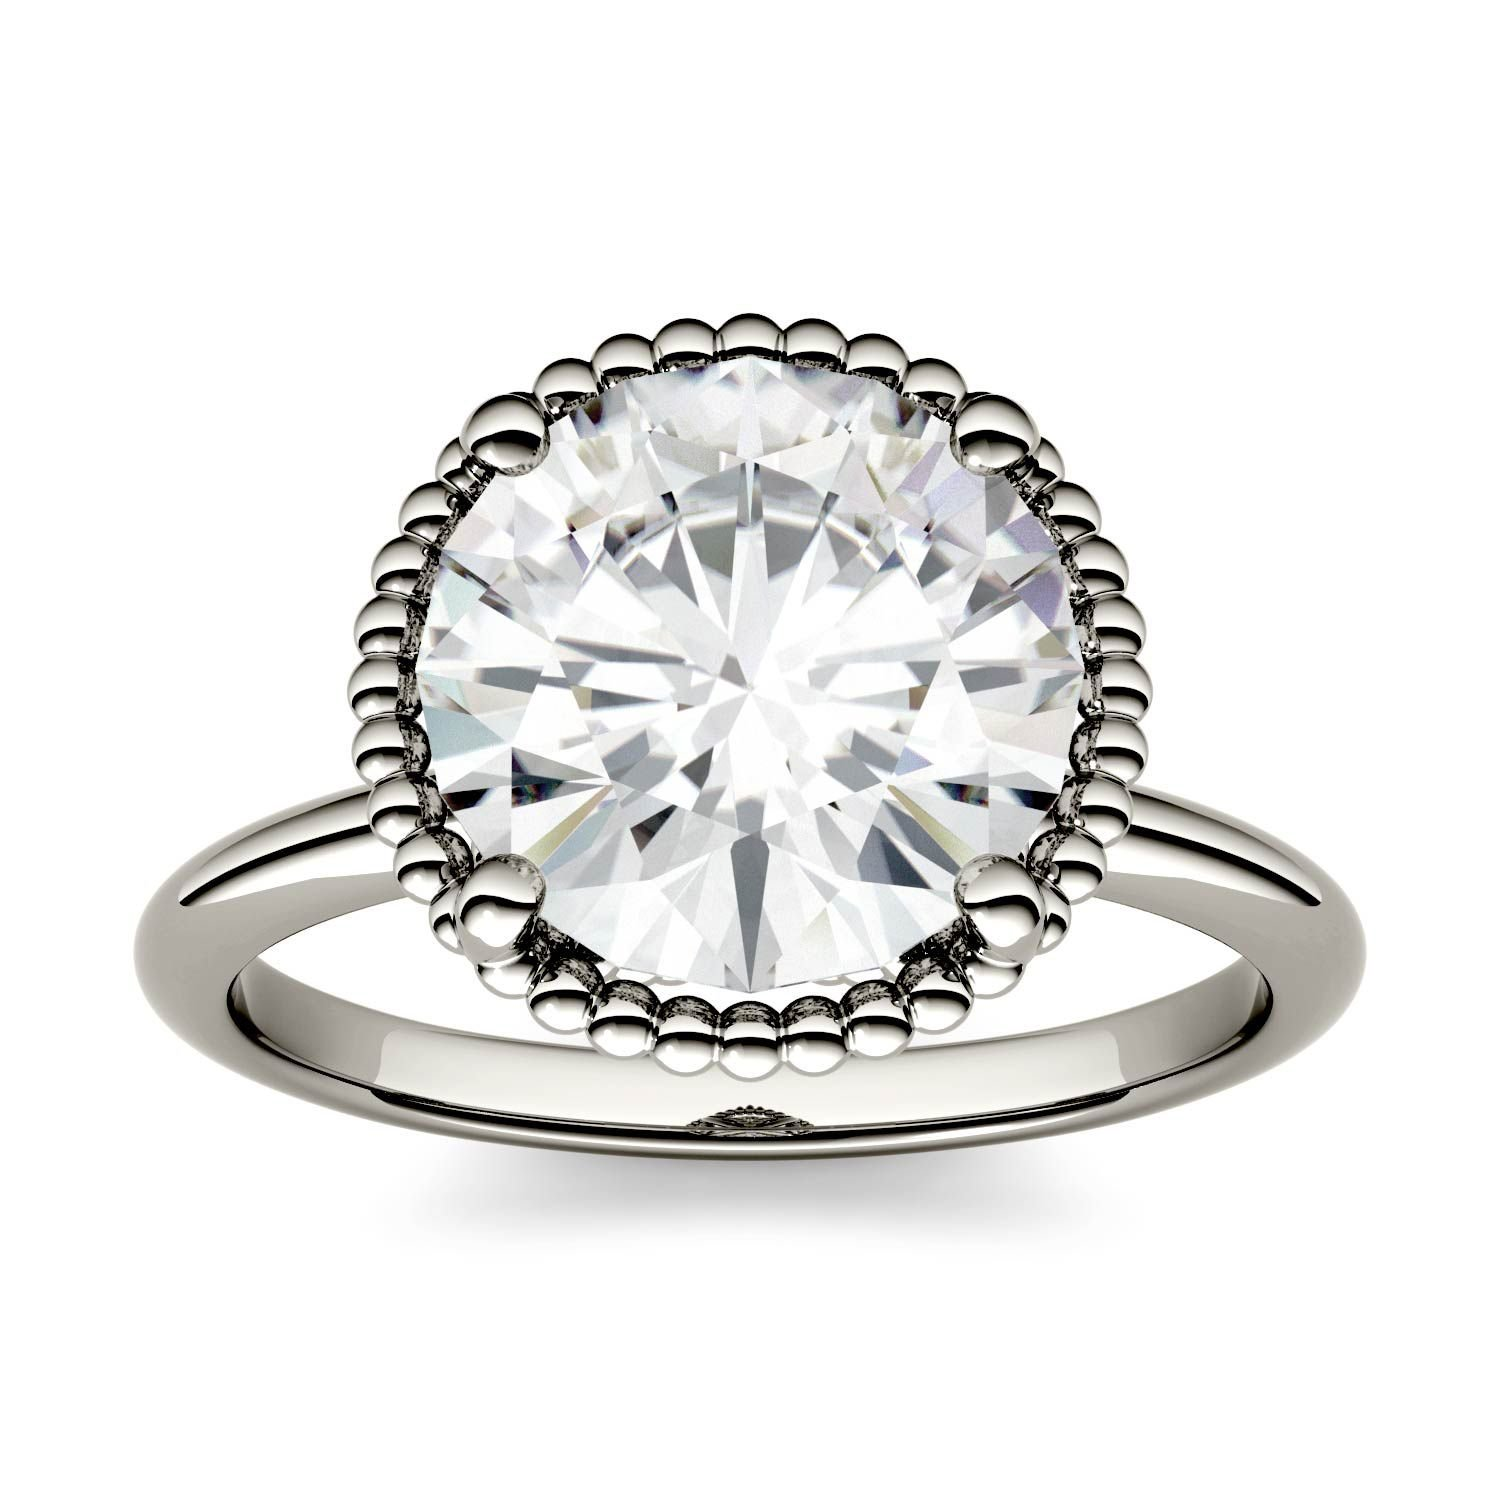 Forever One Round 10.0mm Moissanite Engagement Ring-size 8, 3.60ct DEW (D-E-F) By Charles & Colvard